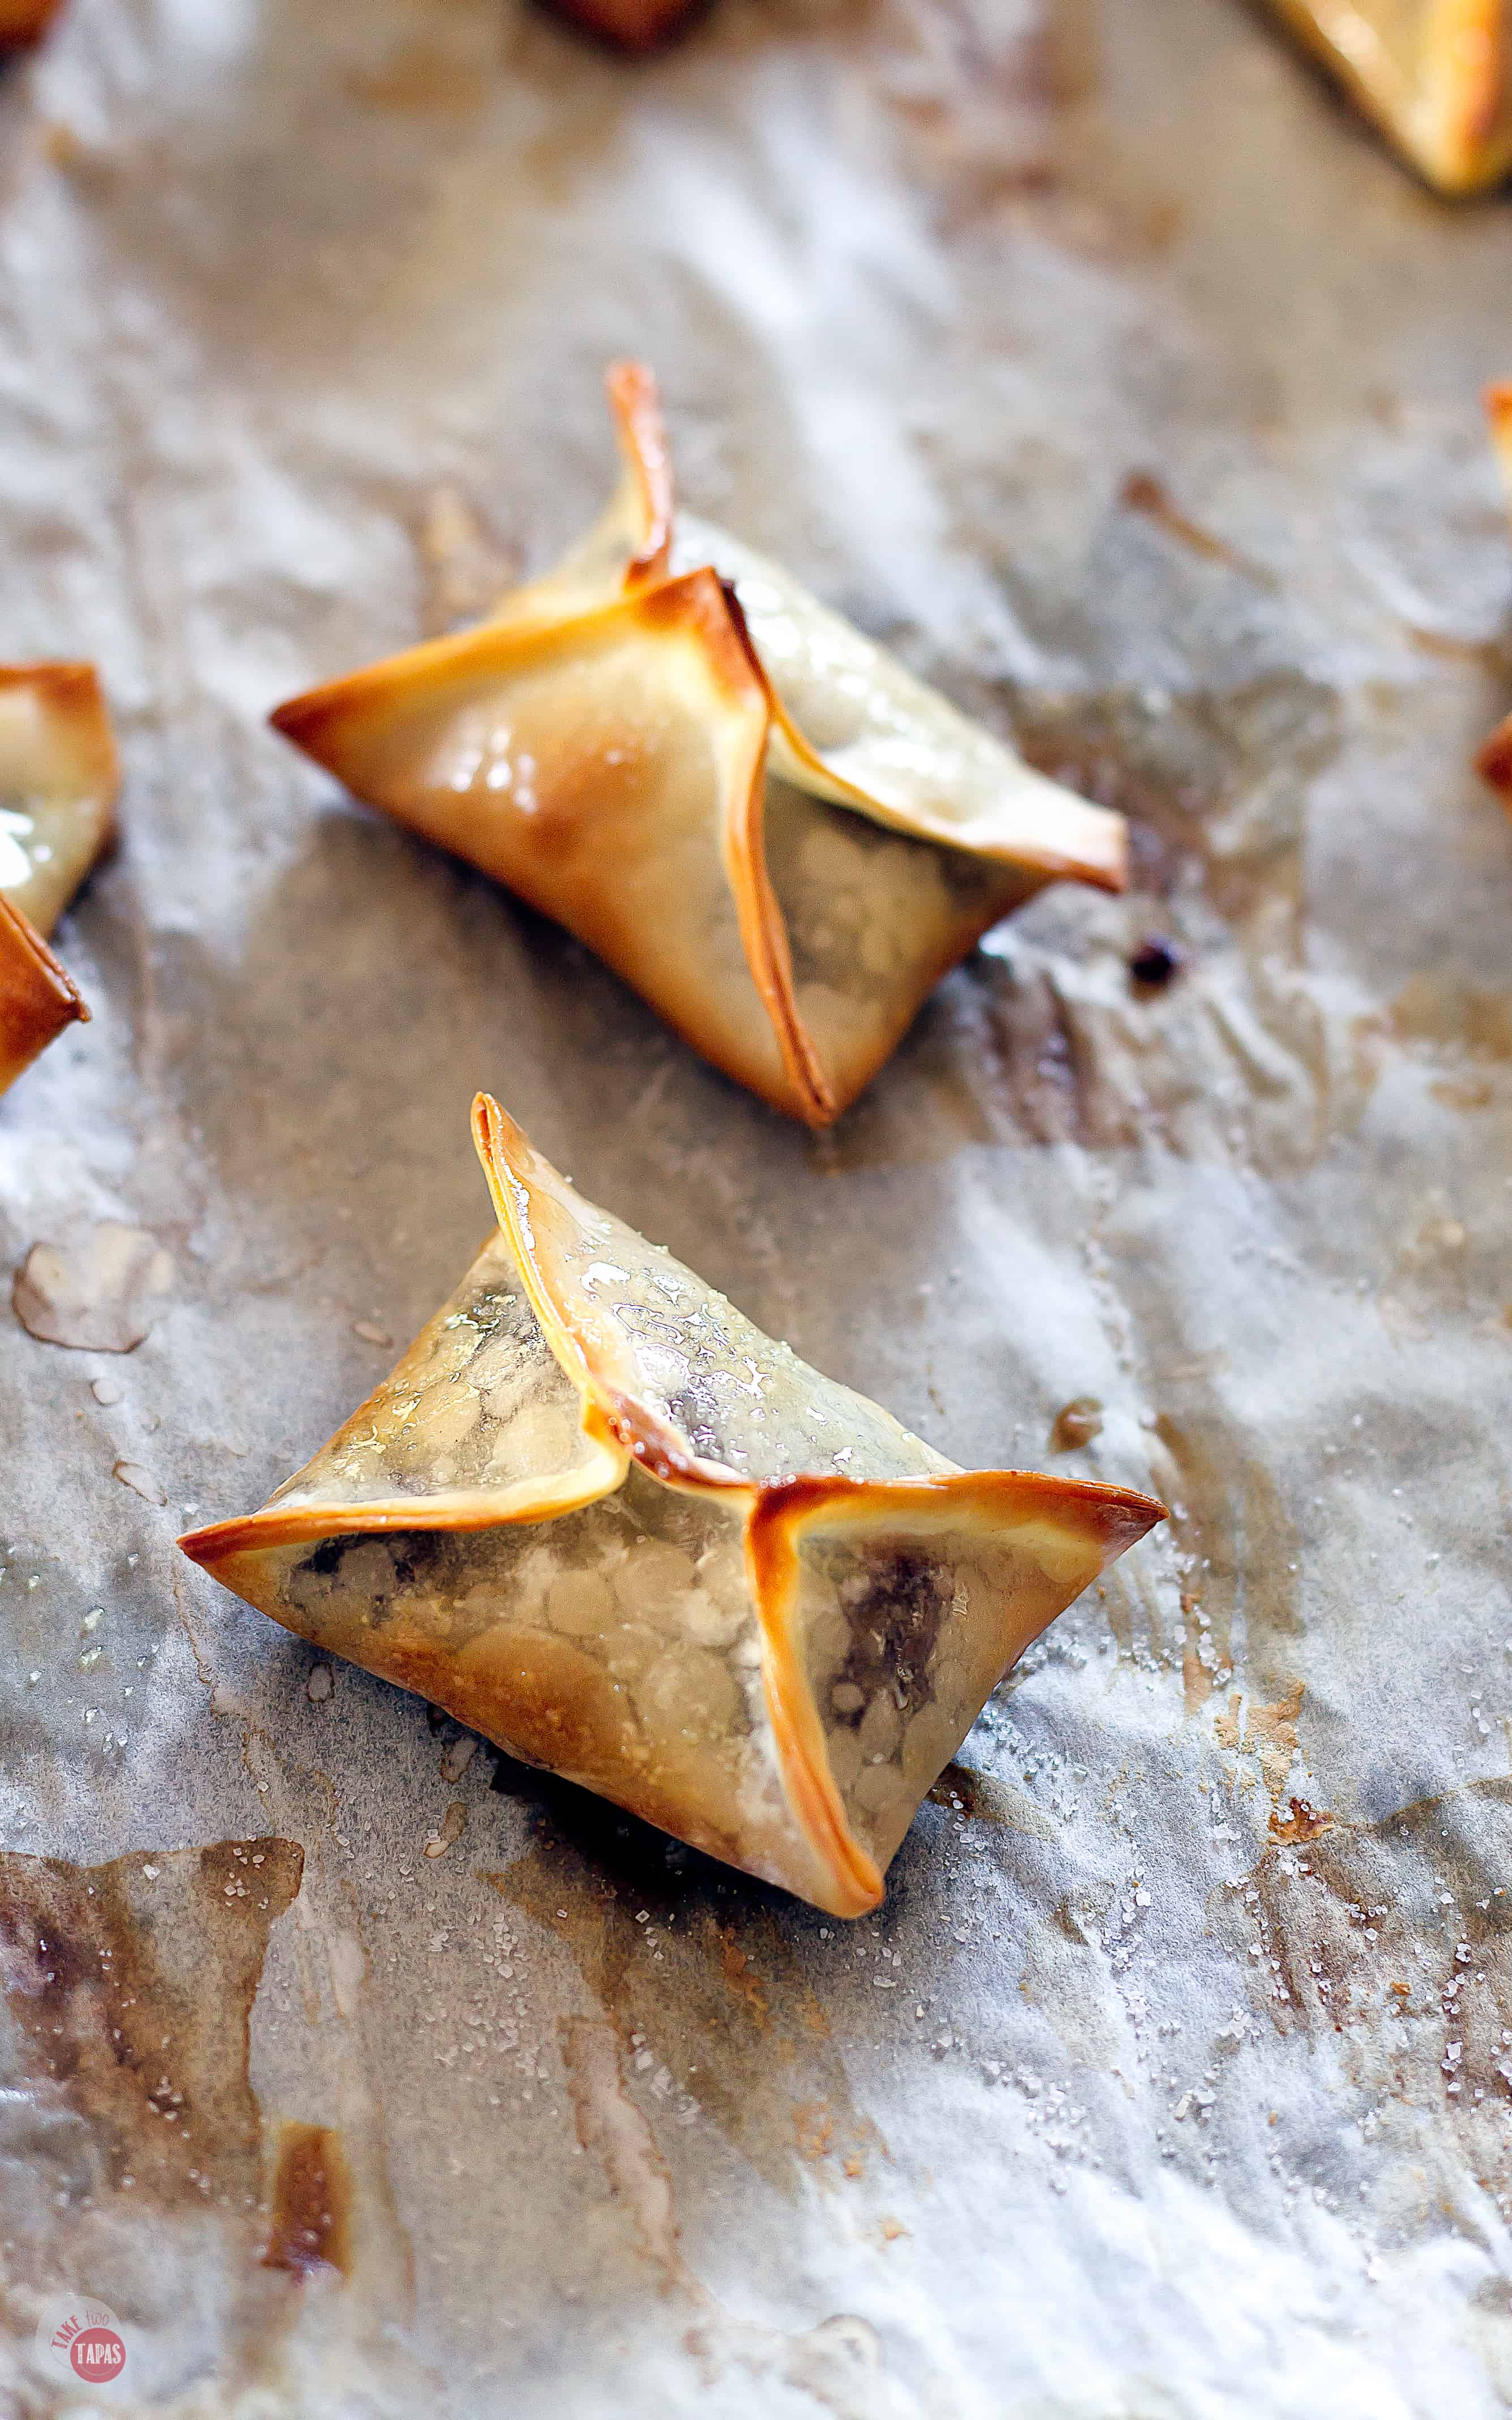 wonton on parchment paper just out of the oven